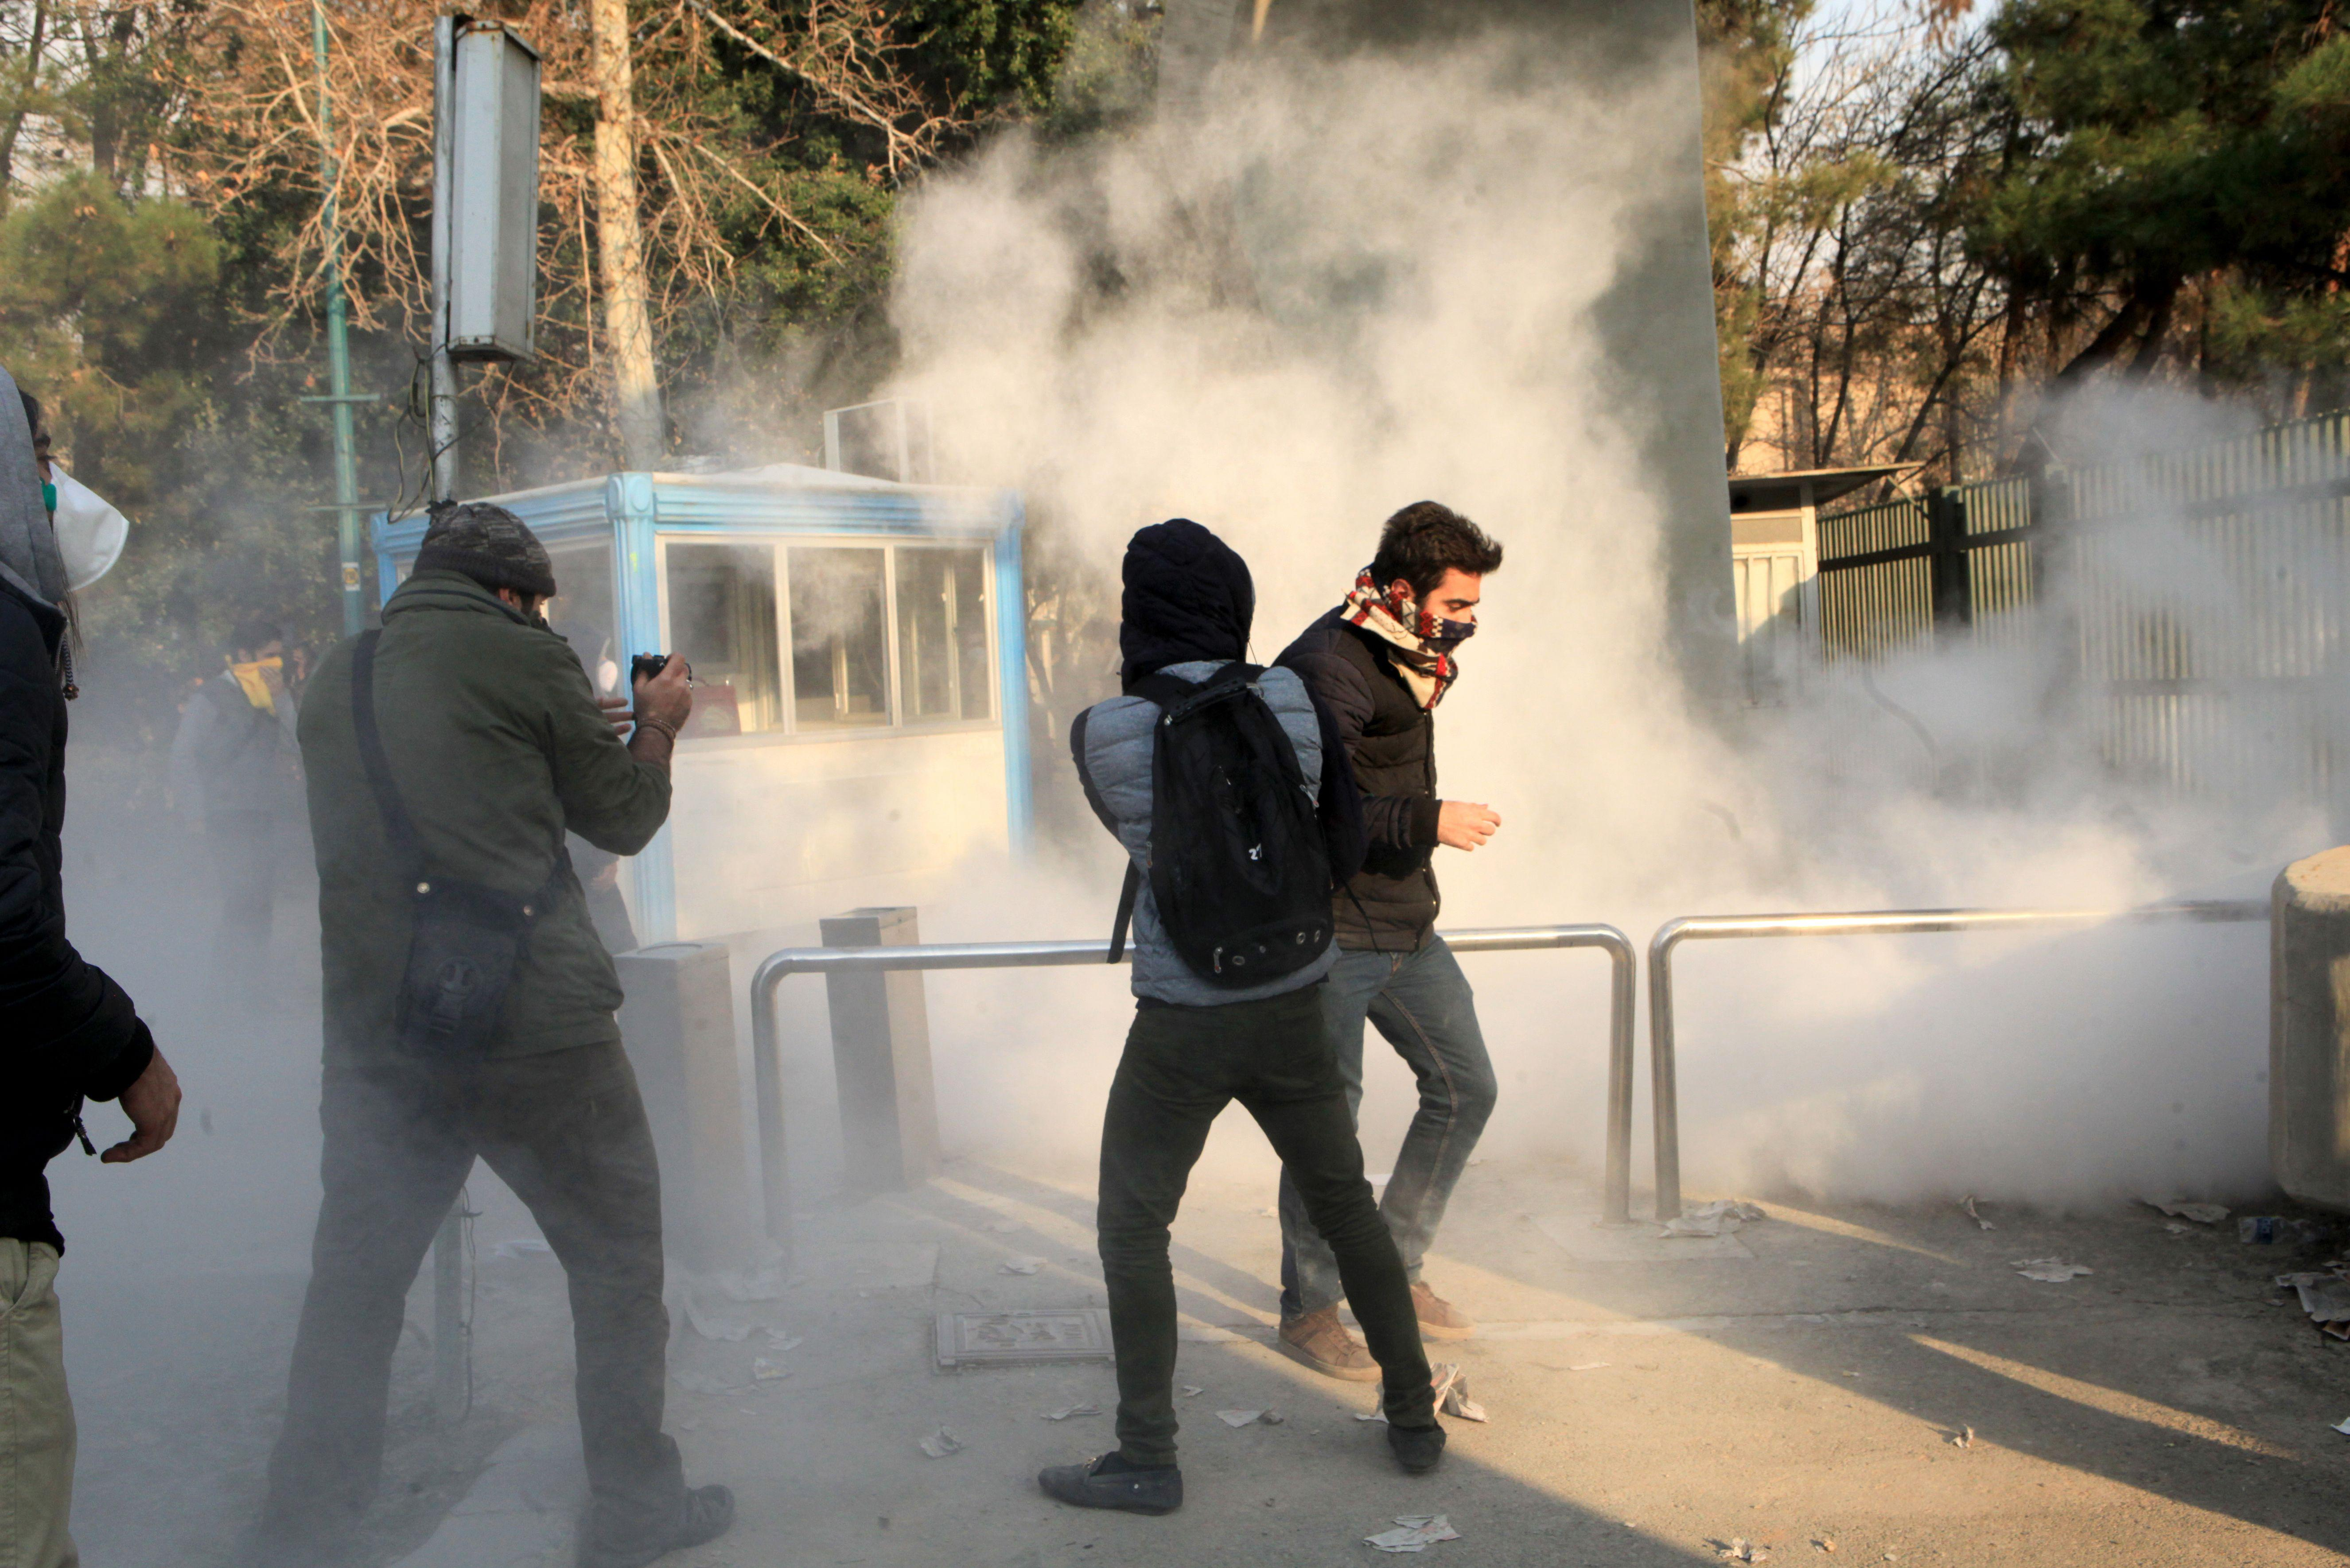 Iranian students run for cover from tear gas at the University of Tehran during a demonstration driven by anger over economic problems, in the capital Tehran on December 30, 2017. Students protested in a third day of demonstrations, videos on social media showed, but were outnumbered by counter-demonstrators.  / AFP PHOTO / STR